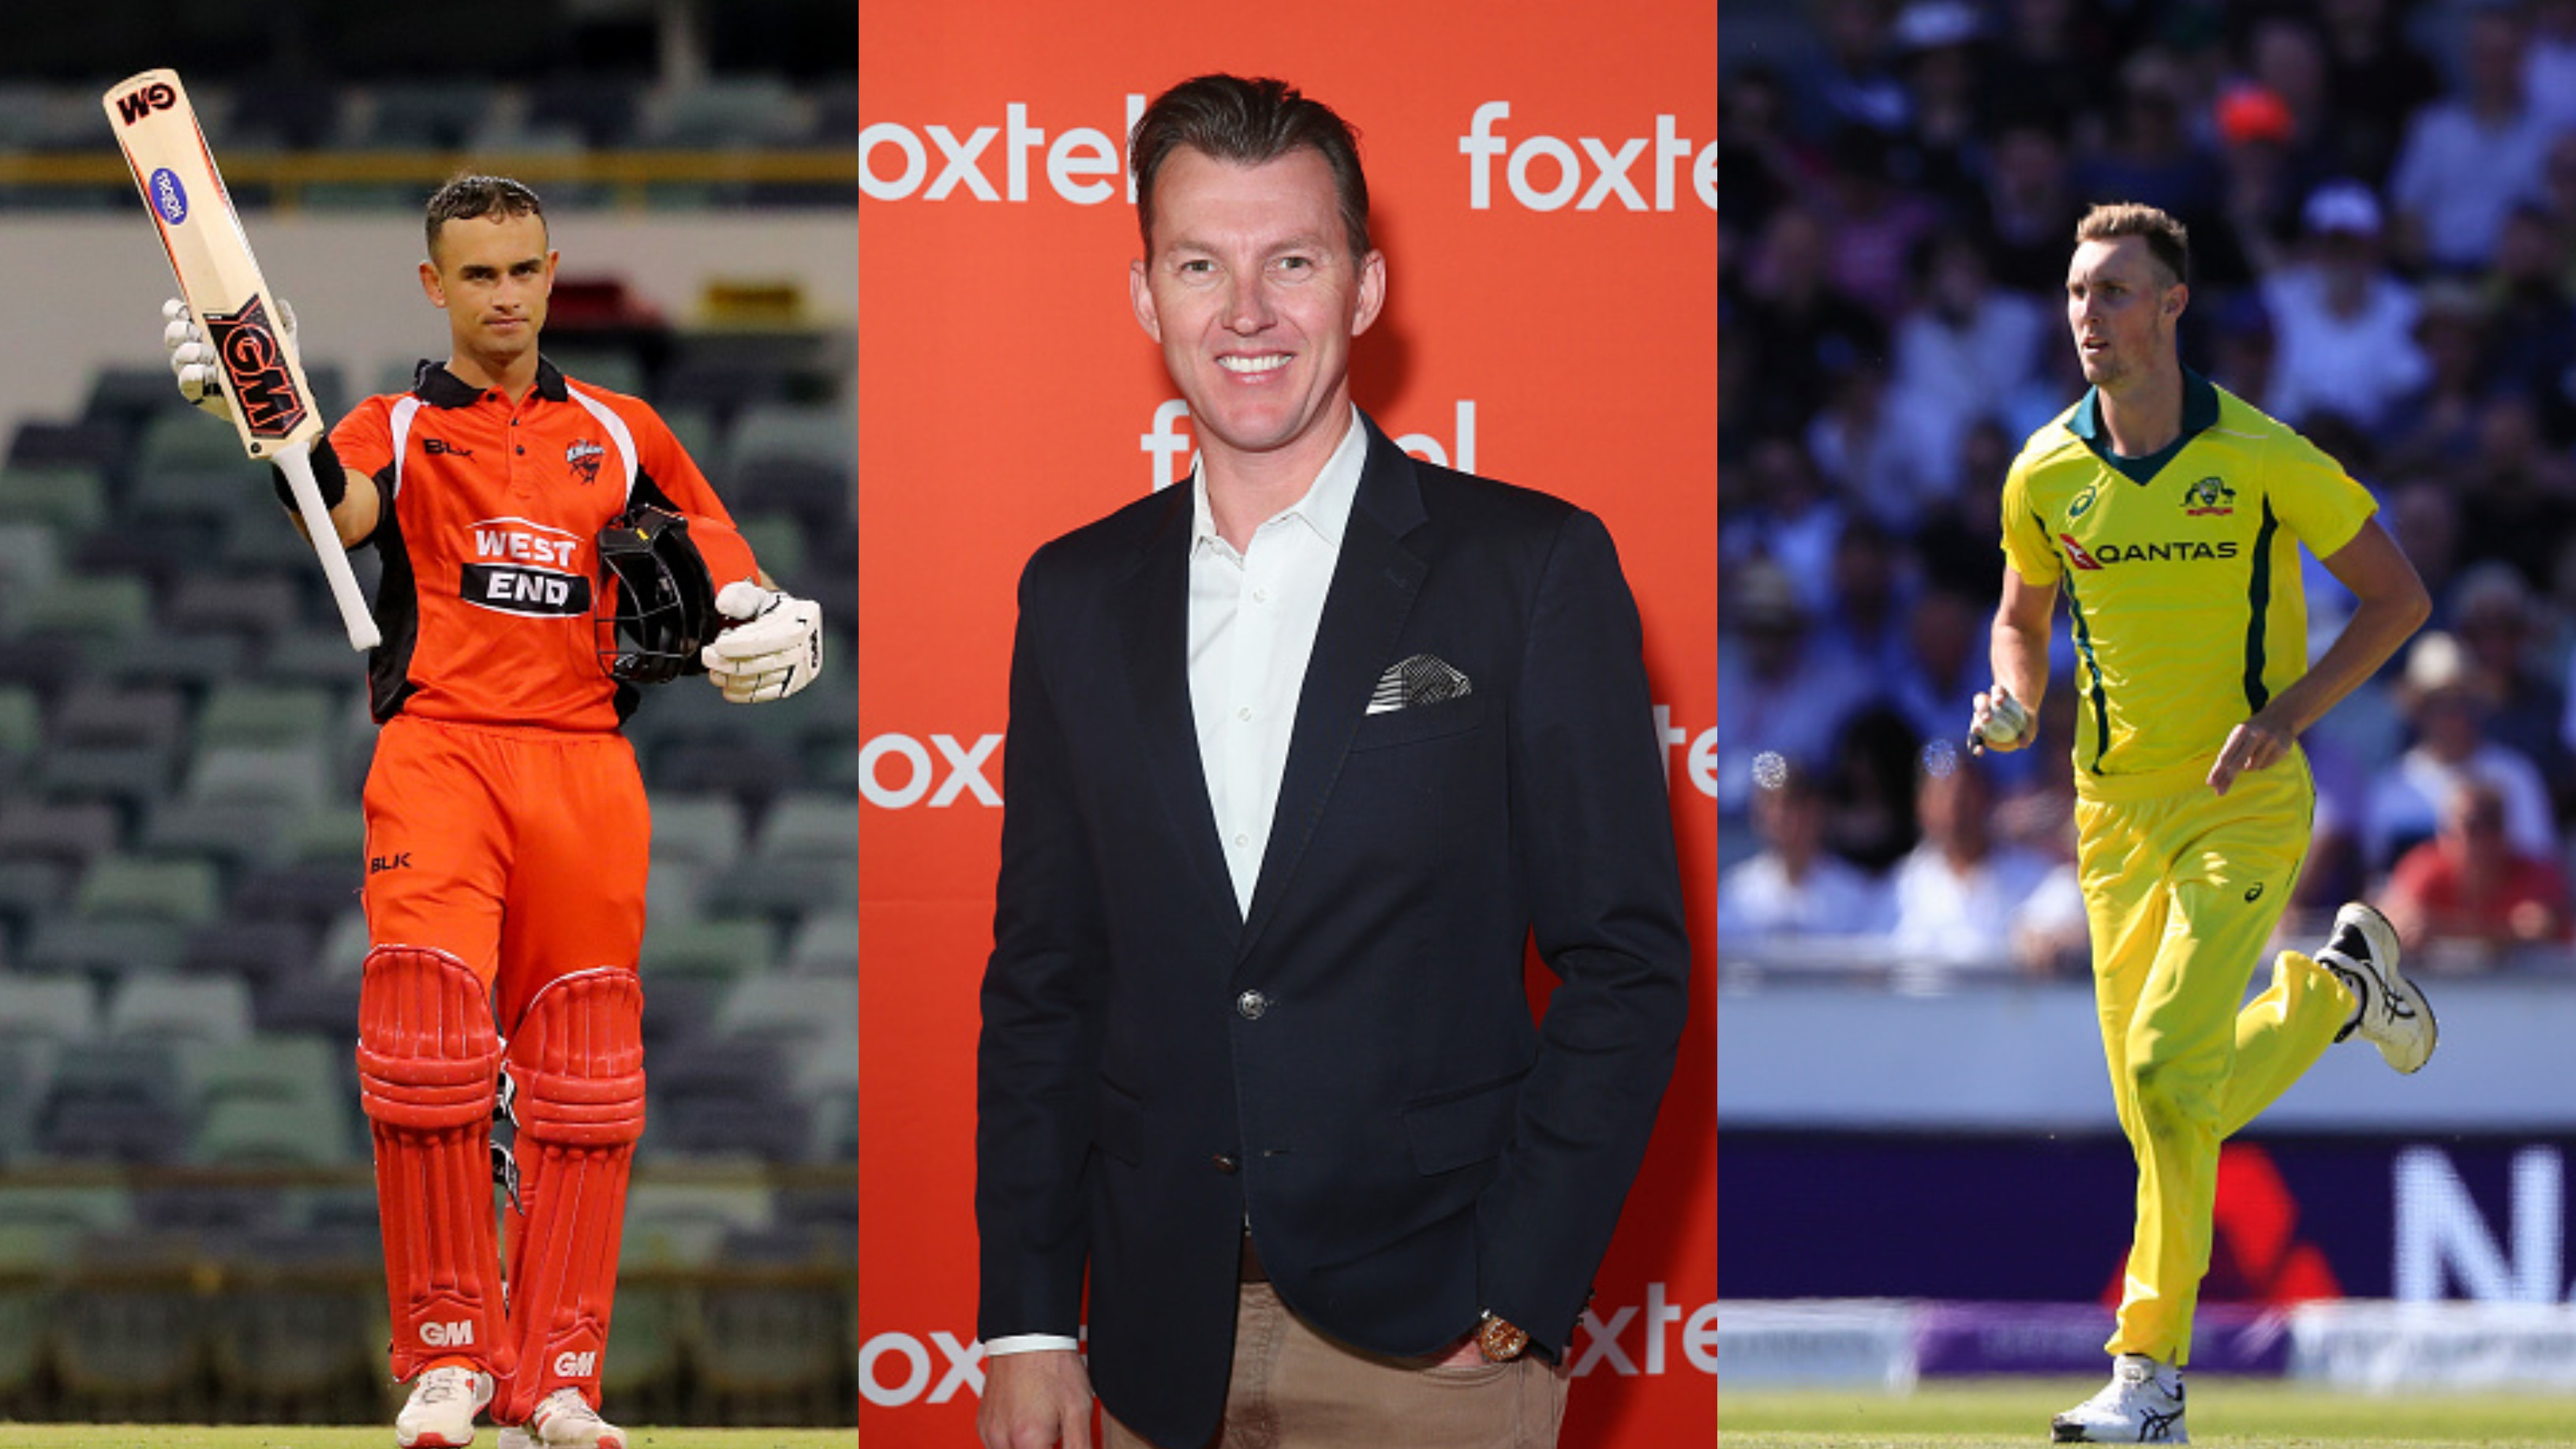 Brett Lee names Jake Weatherald and Billy Stanlake as the next big things in Australian cricket